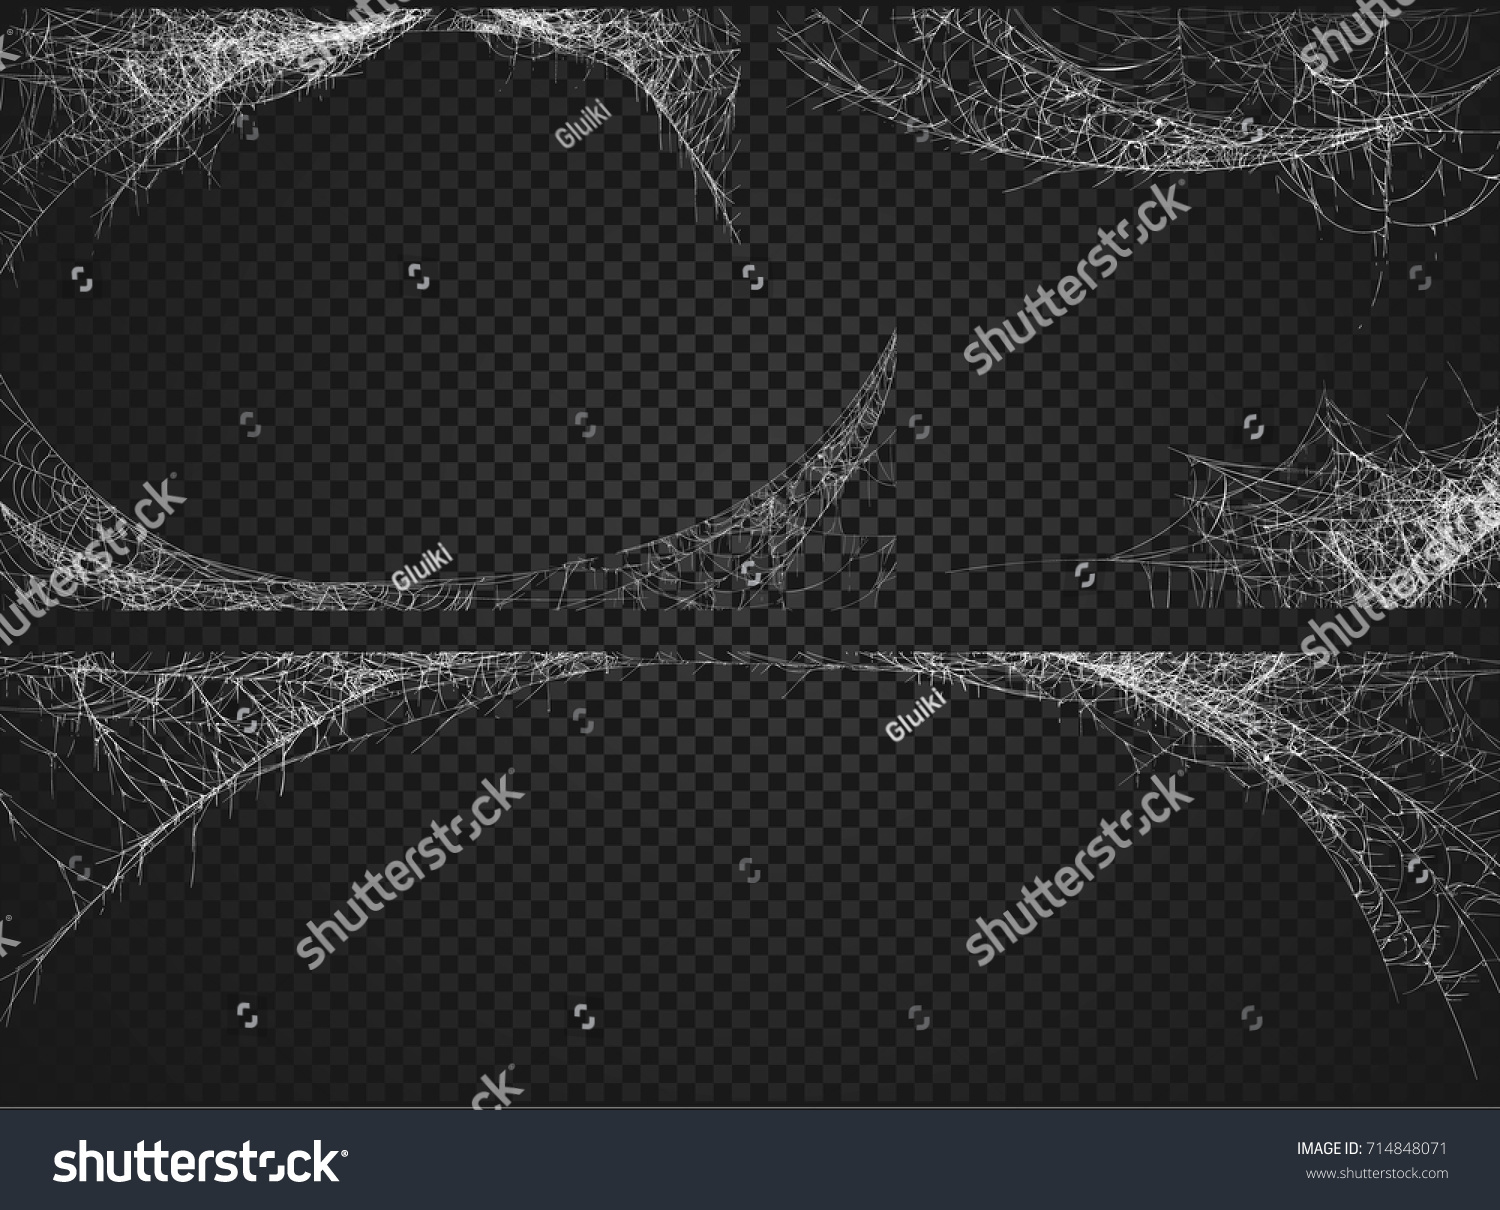 Collection of Cobweb, isolated on black, transparent background. Spiderweb for Halloween design.  #714848071